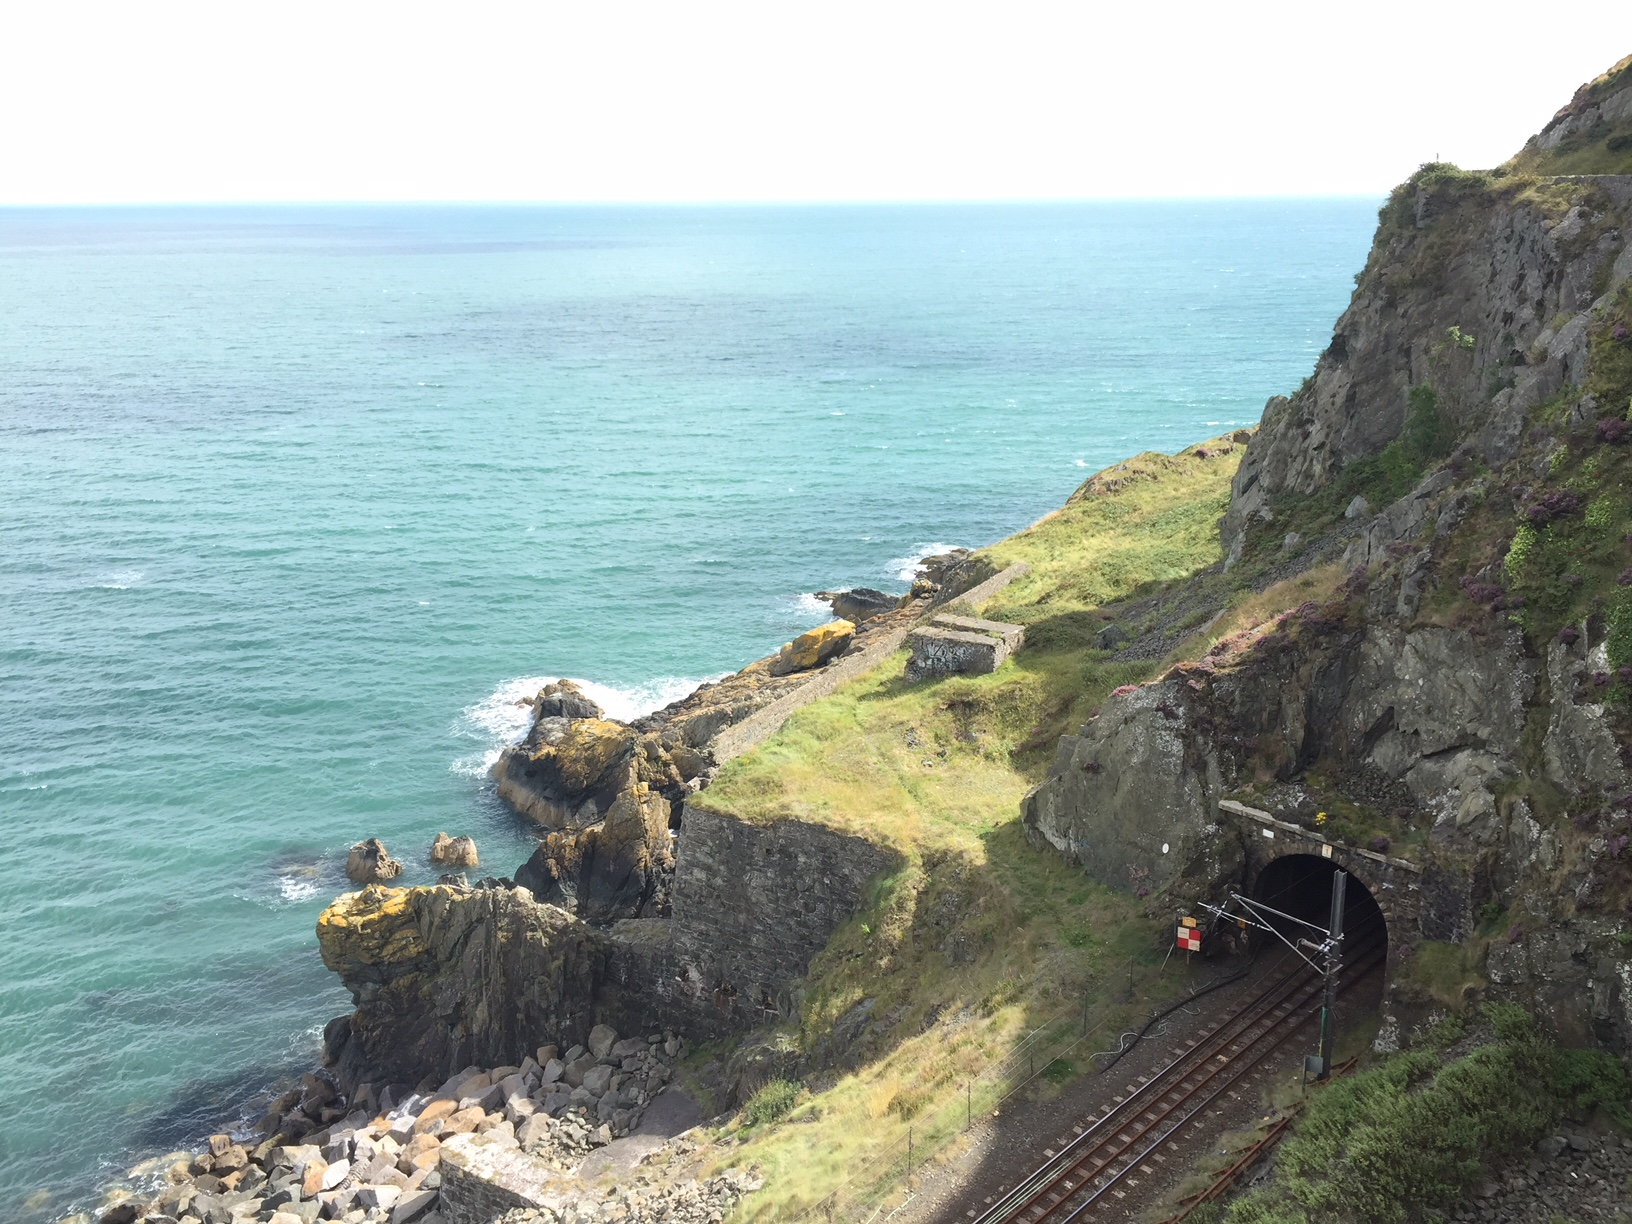 The railway was finished in 1856 and full marks go to the adventurous Victorian engineers for their tunnels through the rocky cliff face.